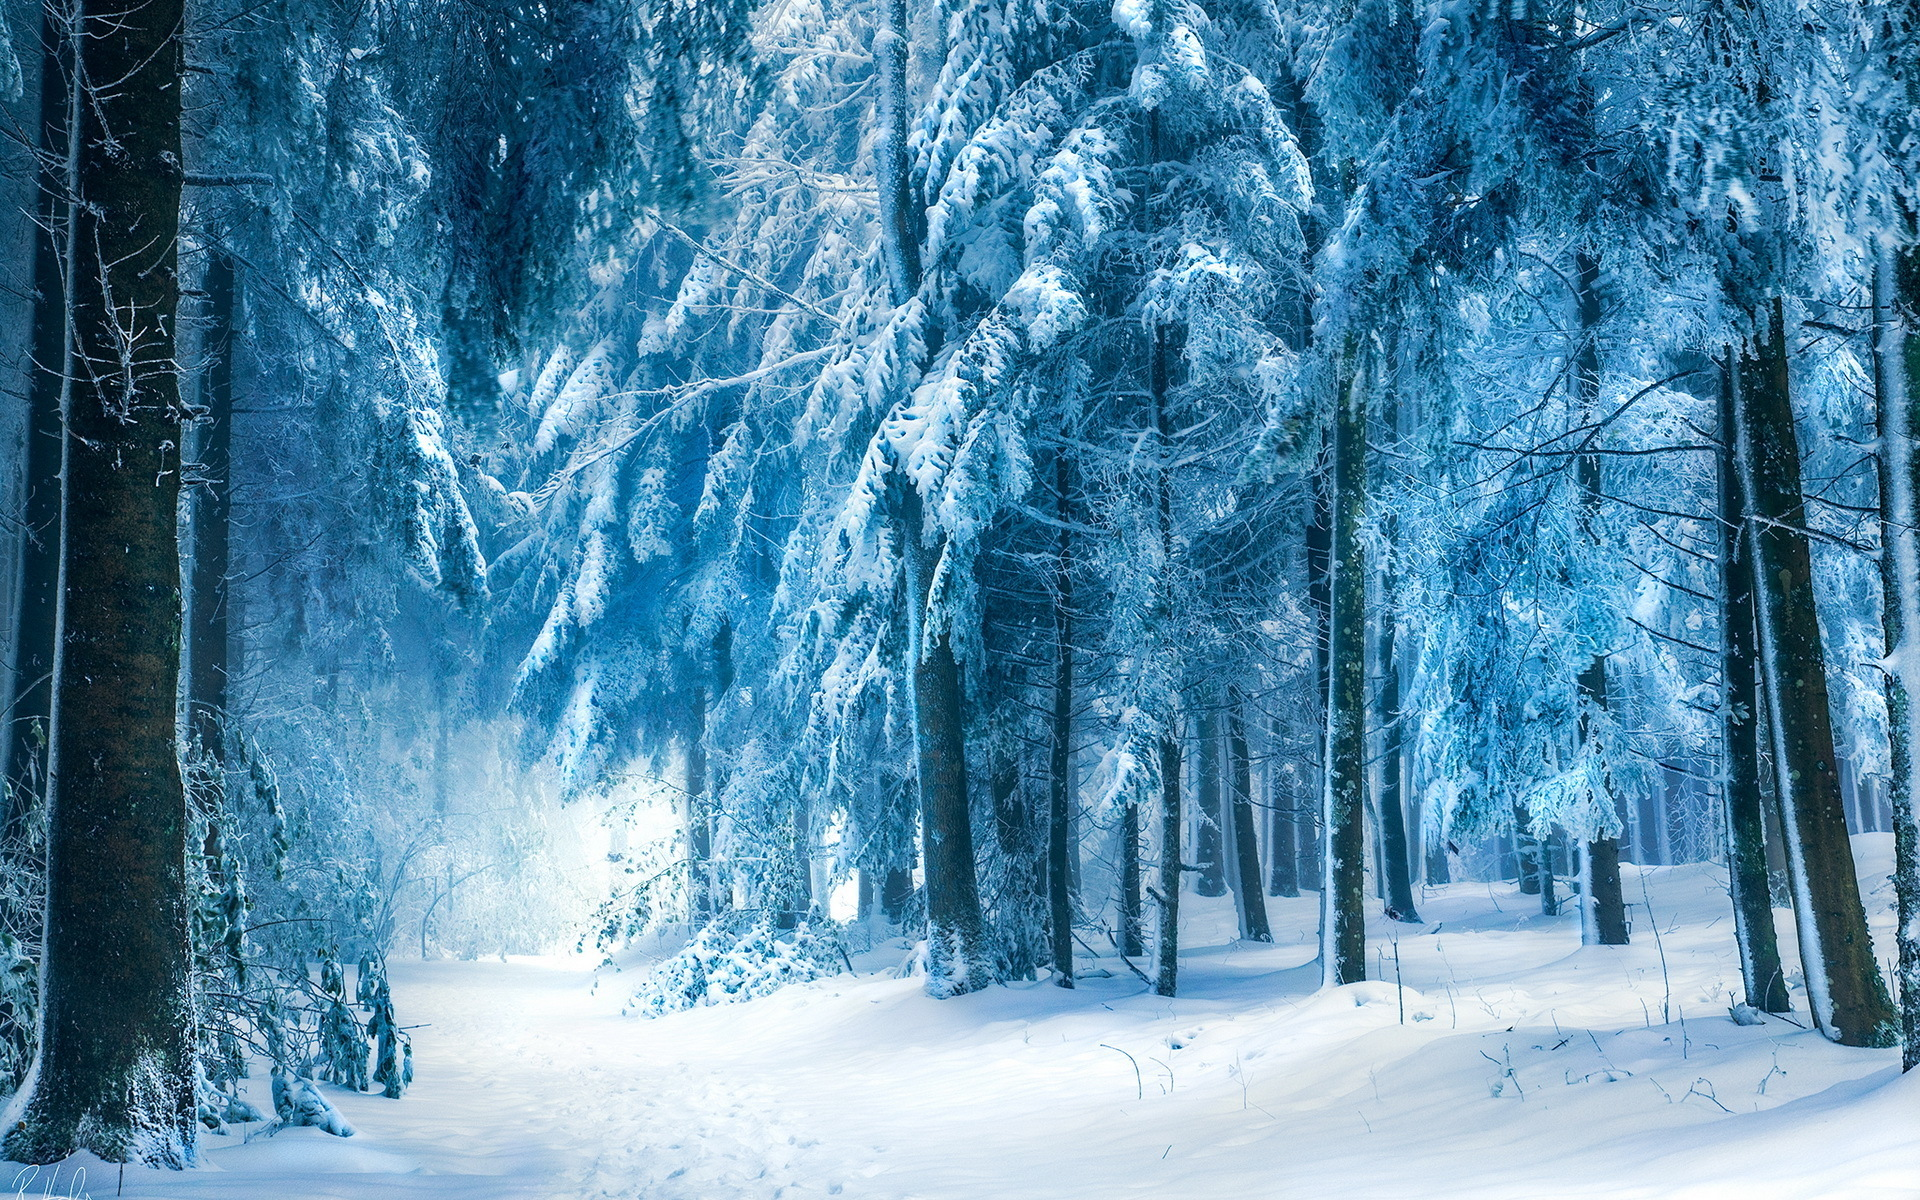 Winter Forest Wallpapers, 44 Winter Forest HDQ Images | Wallpapers ...